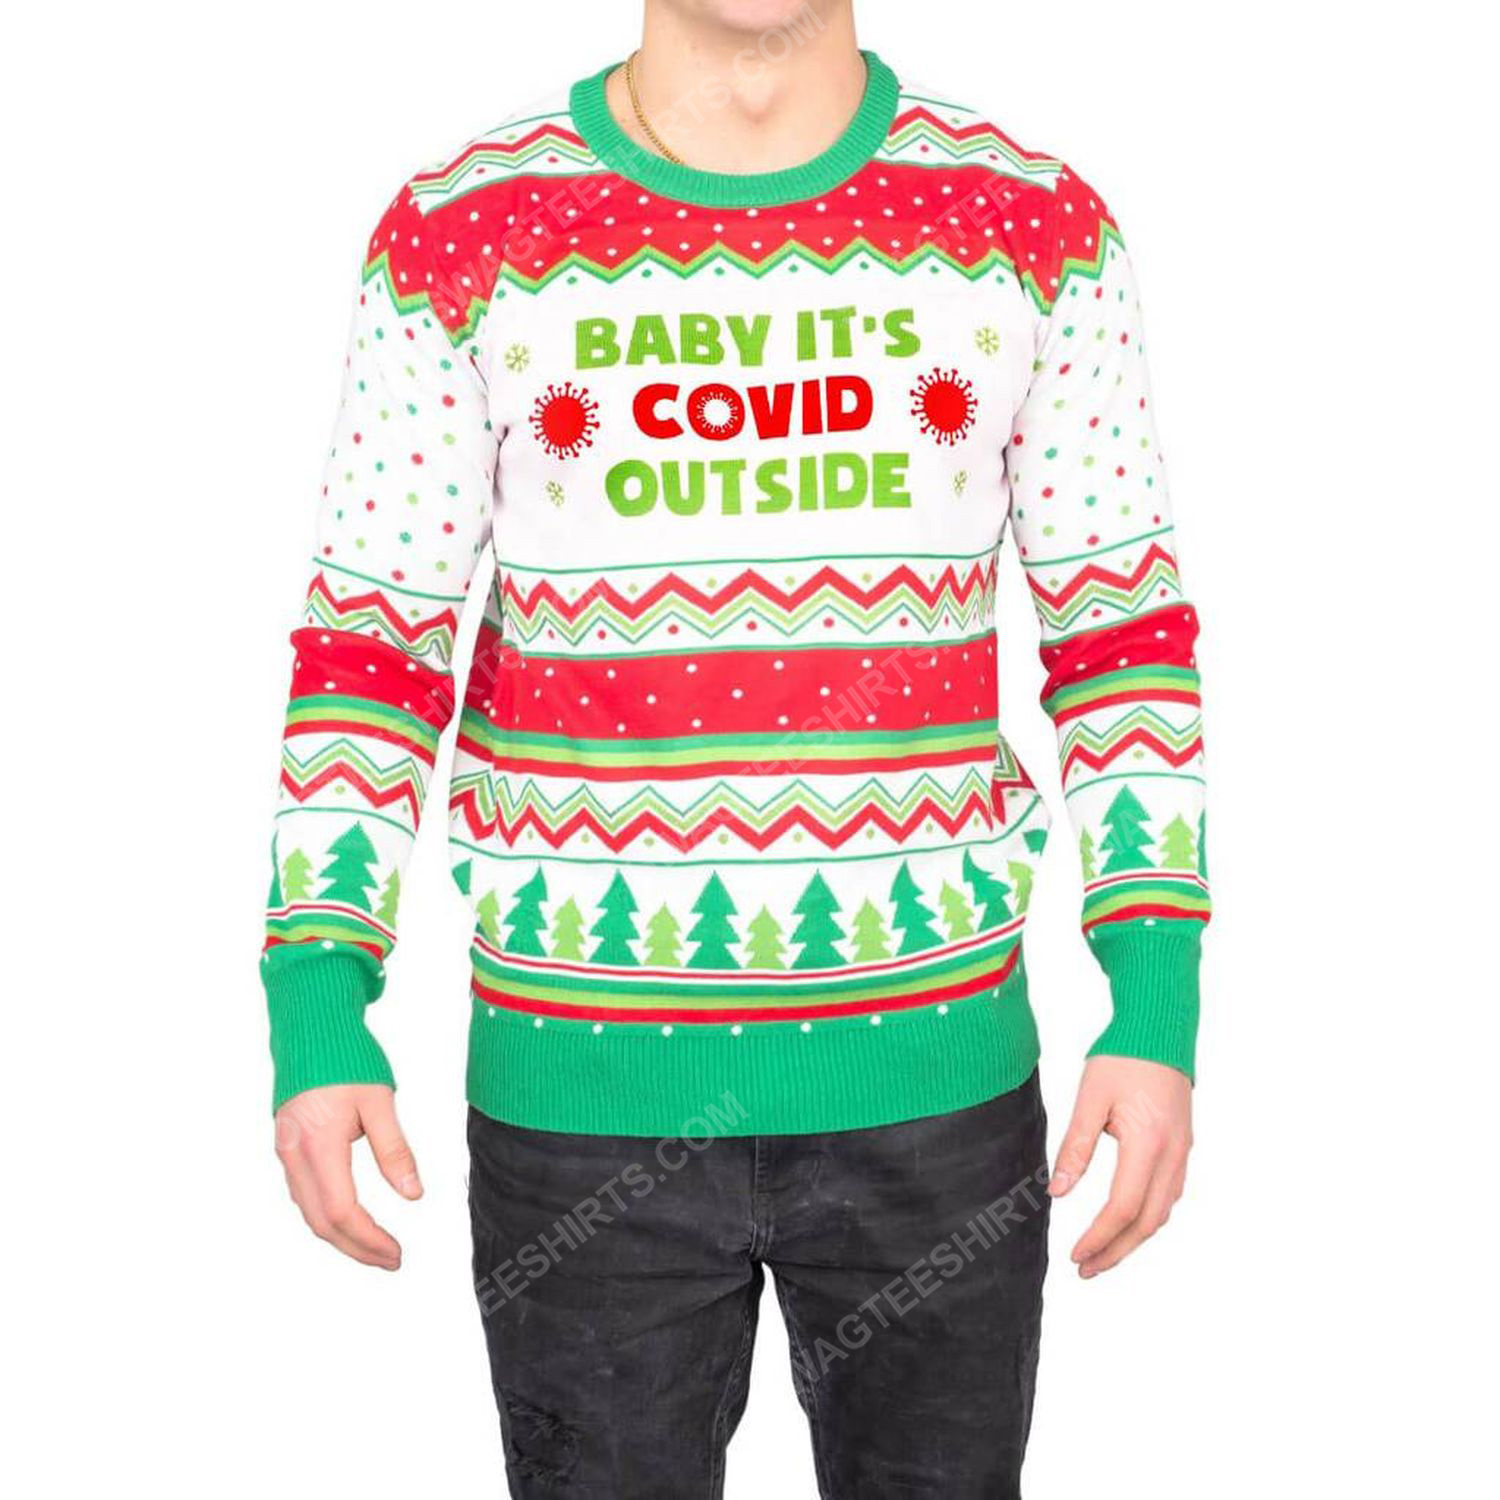 Baby it's covid outside full print ugly christmas sweater 2